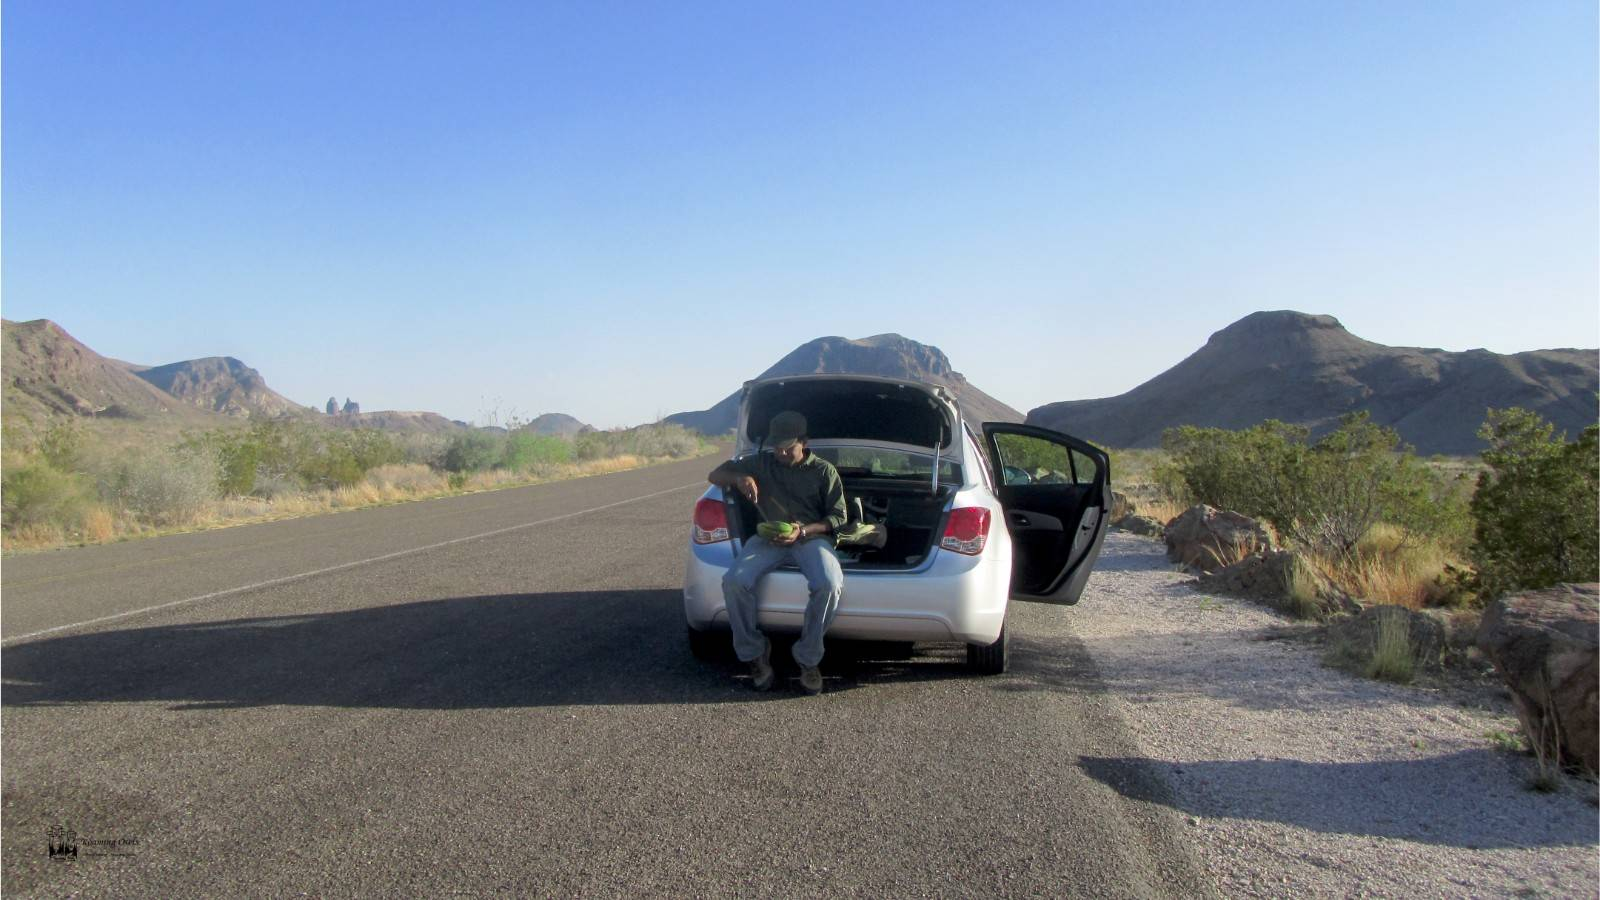 bigbend national park, texas,watermelon,hot sunny day